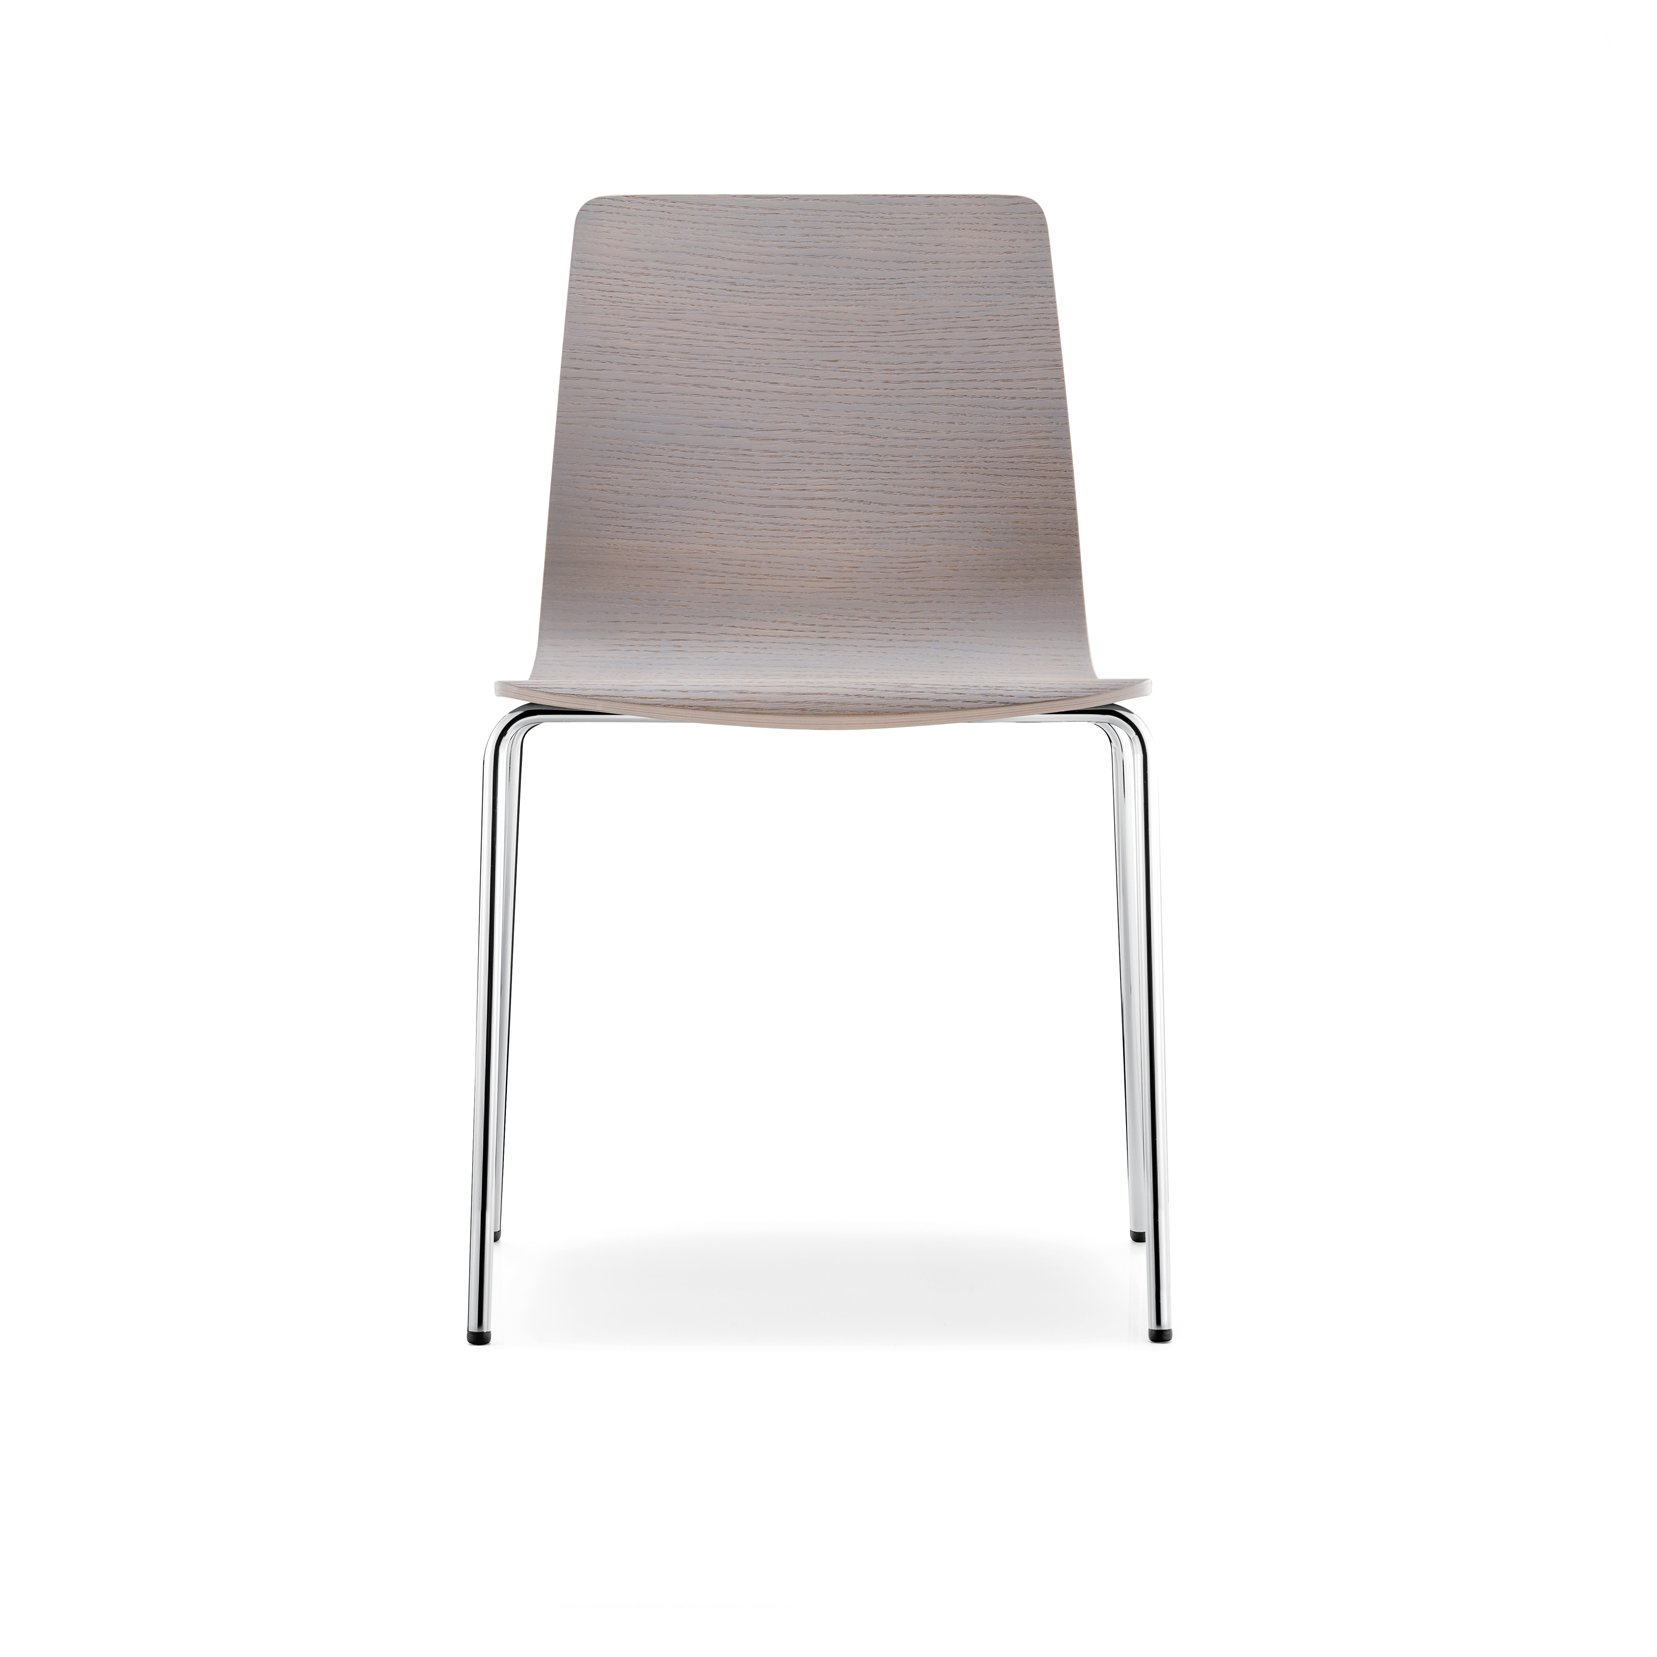 Inga 5613 chair from Pedrali, designed by Pedrali R&D